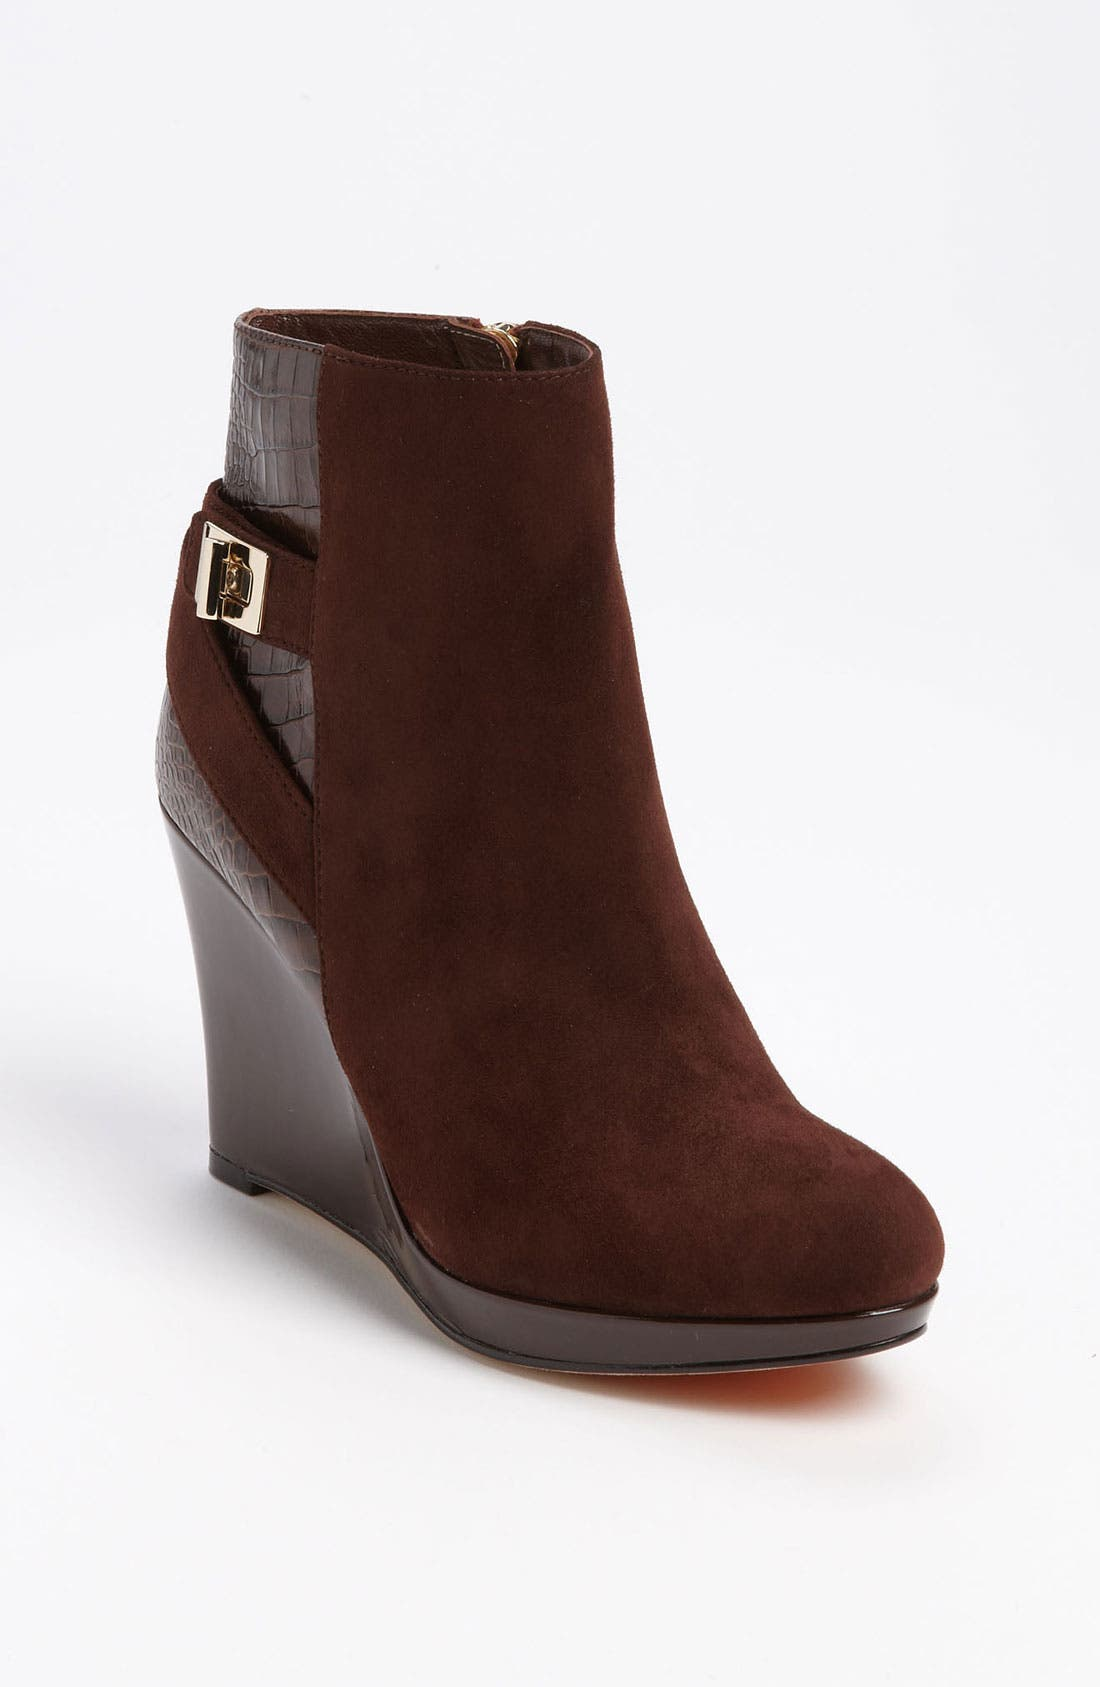 Alternate Image 1 Selected - Cole Haan 'Martina' Wedge Ankle Boot